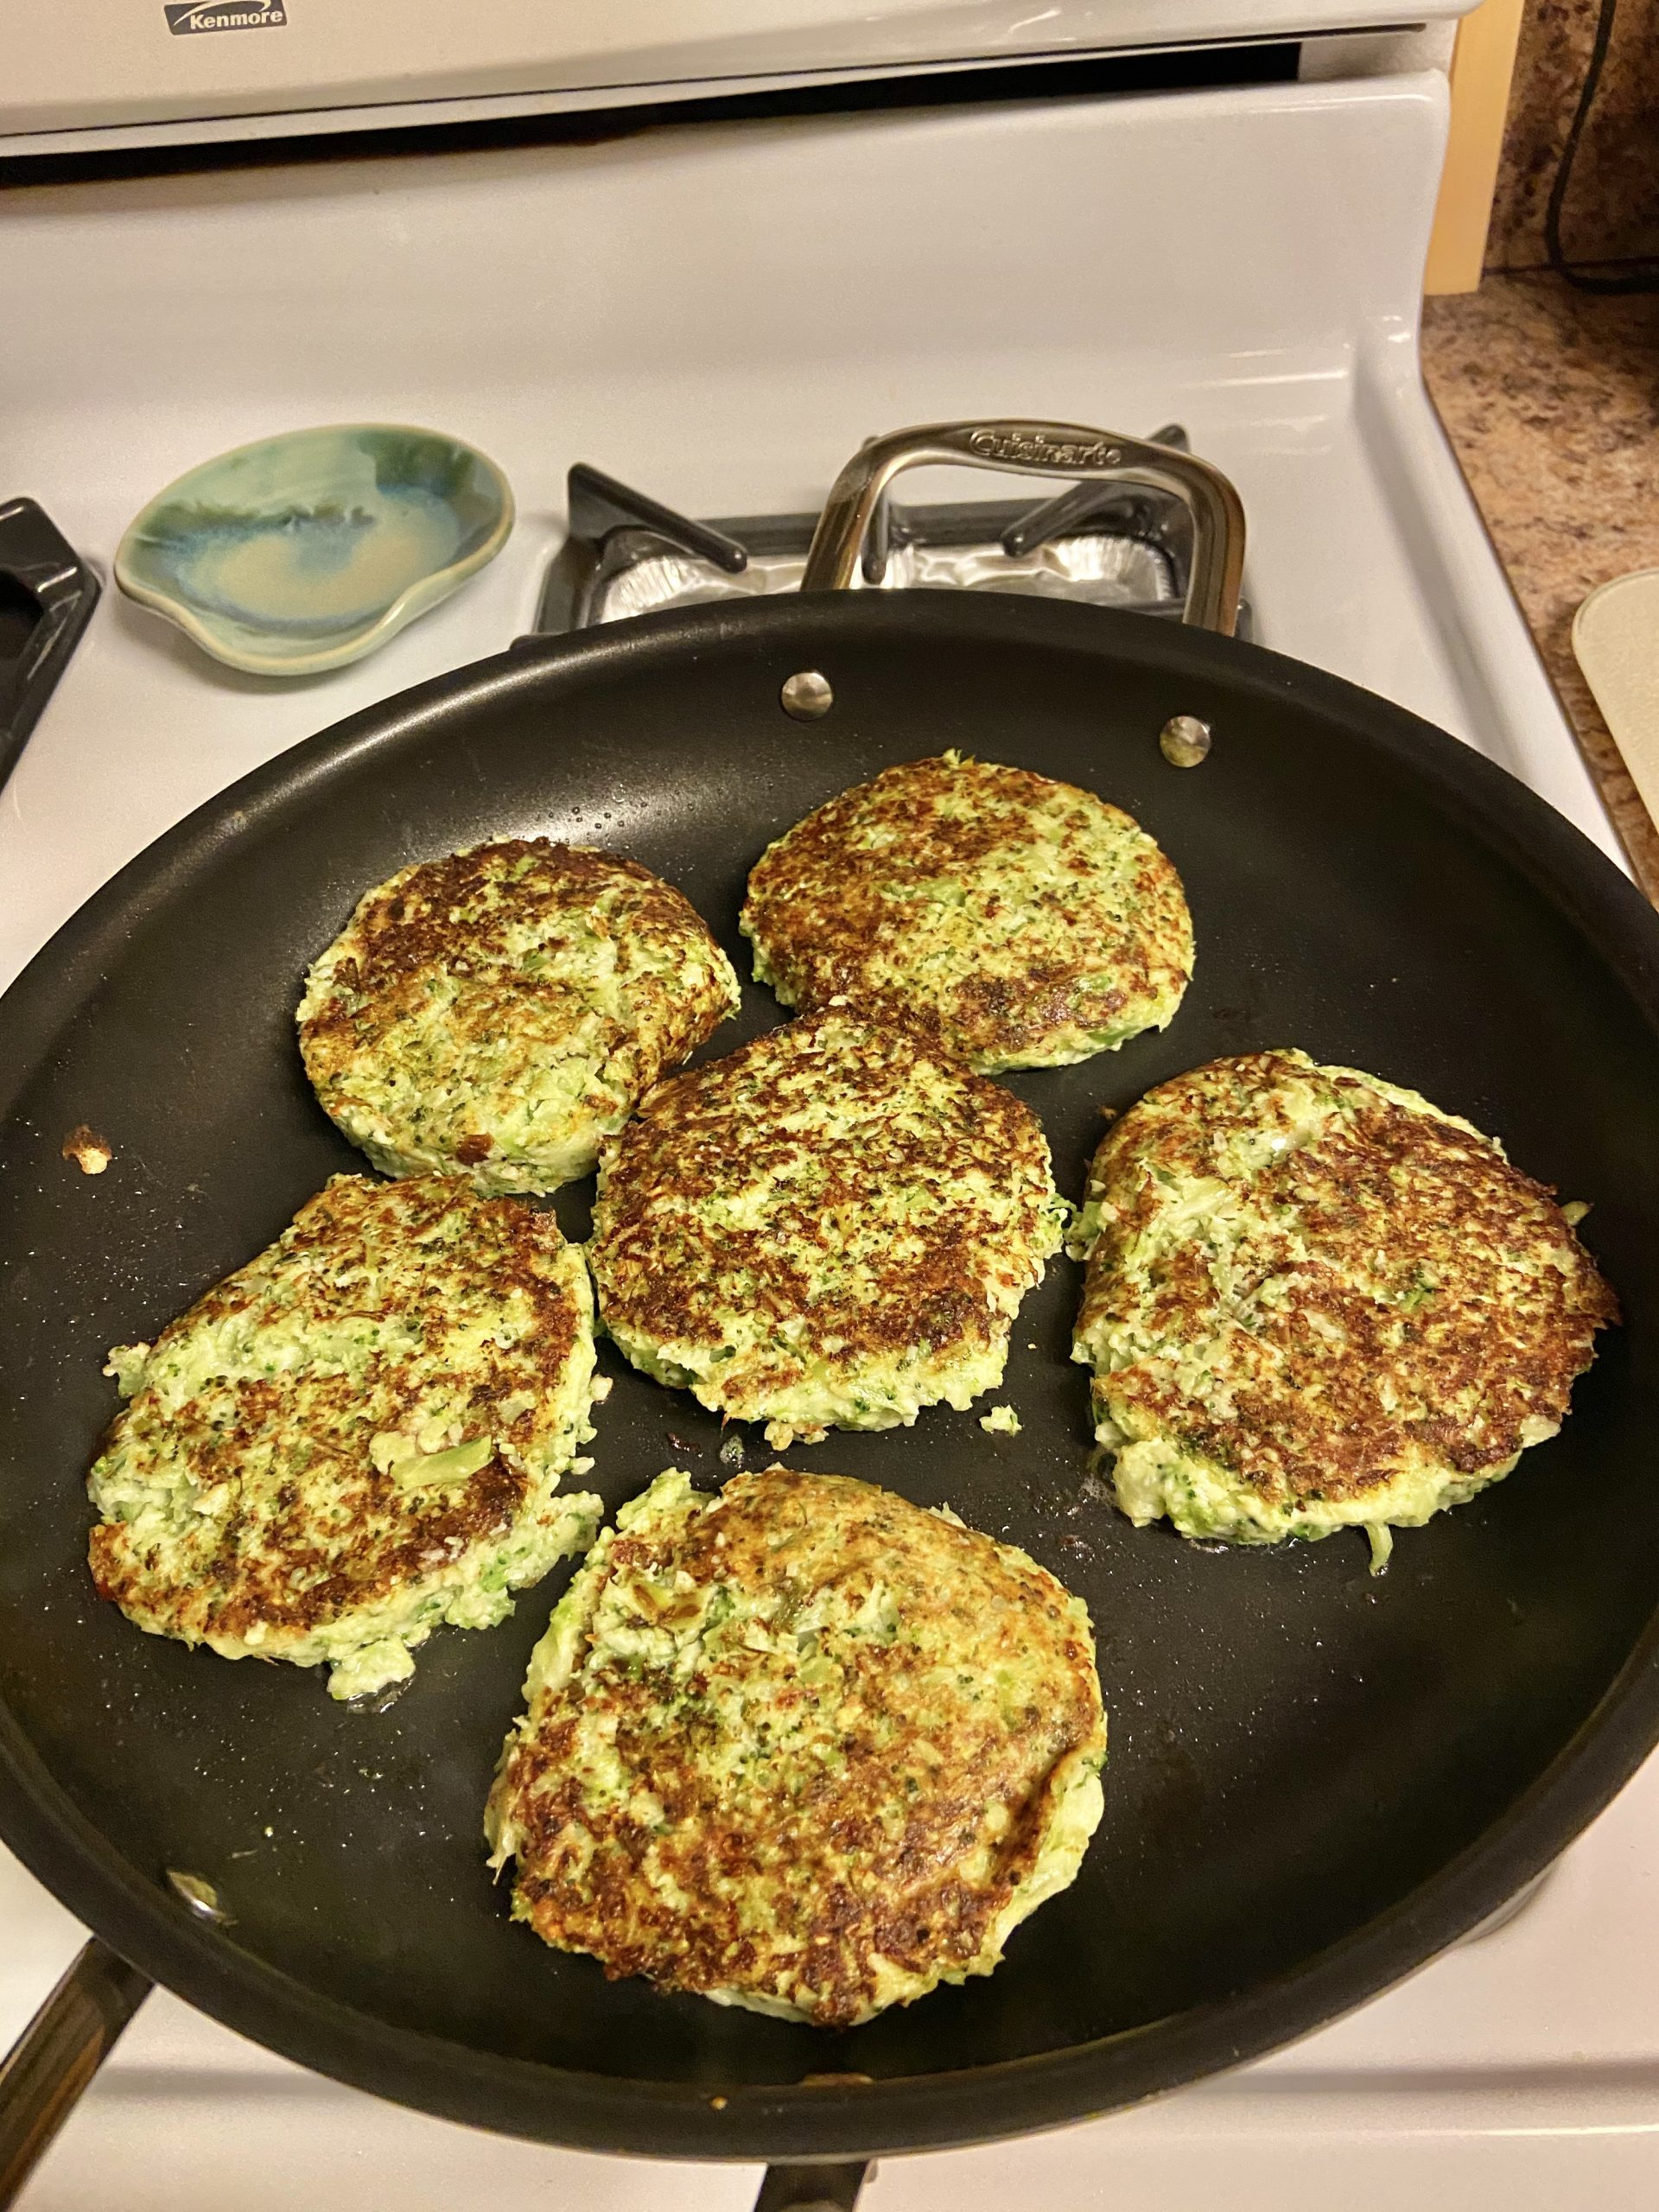 Broccoli Burgers -a little over two points each on Weight Watcher blue